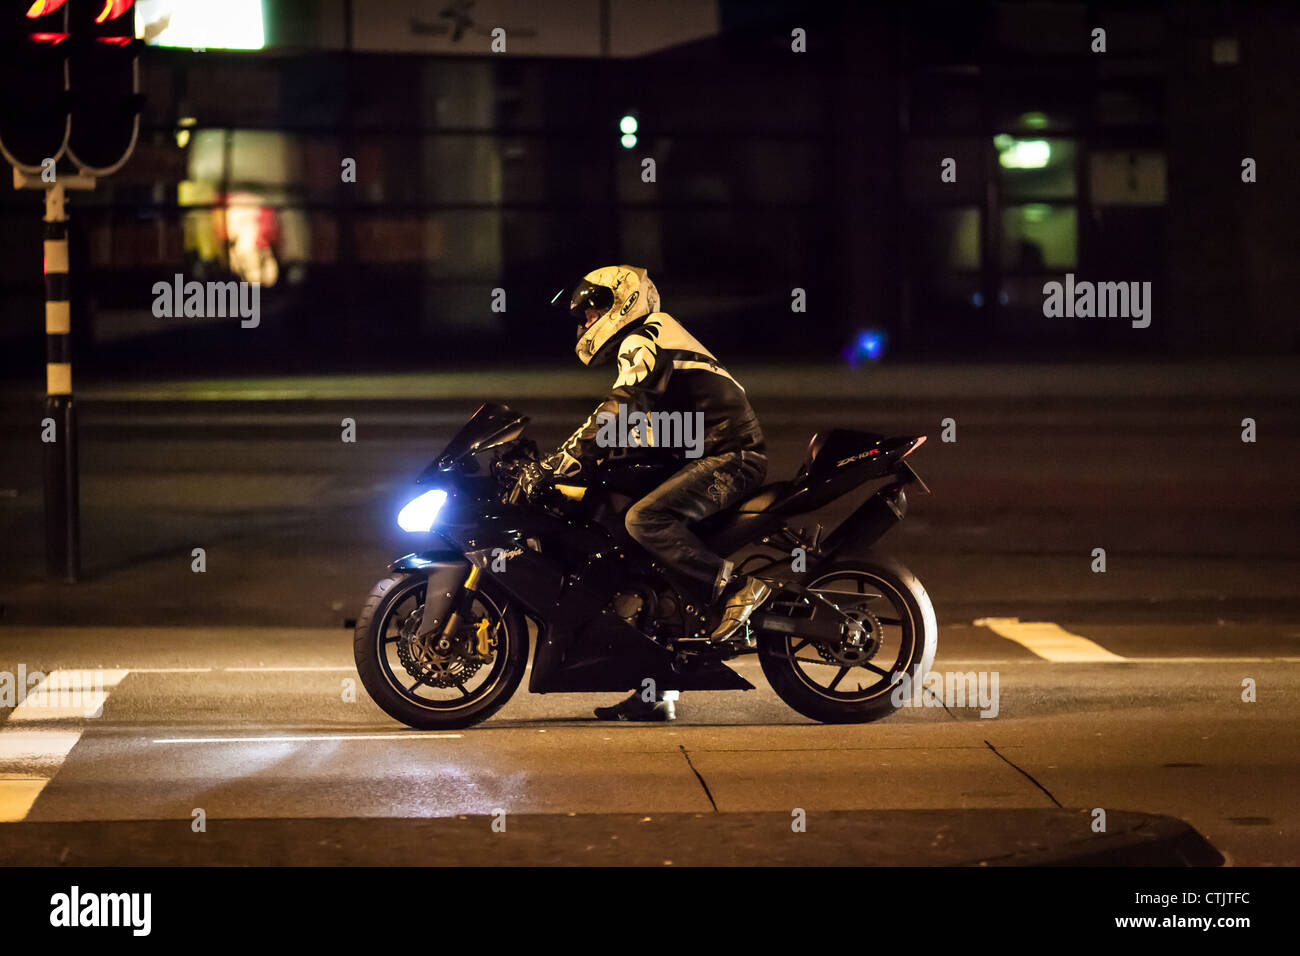 motorcycle waiting in front of stoplight at night - Stock Image